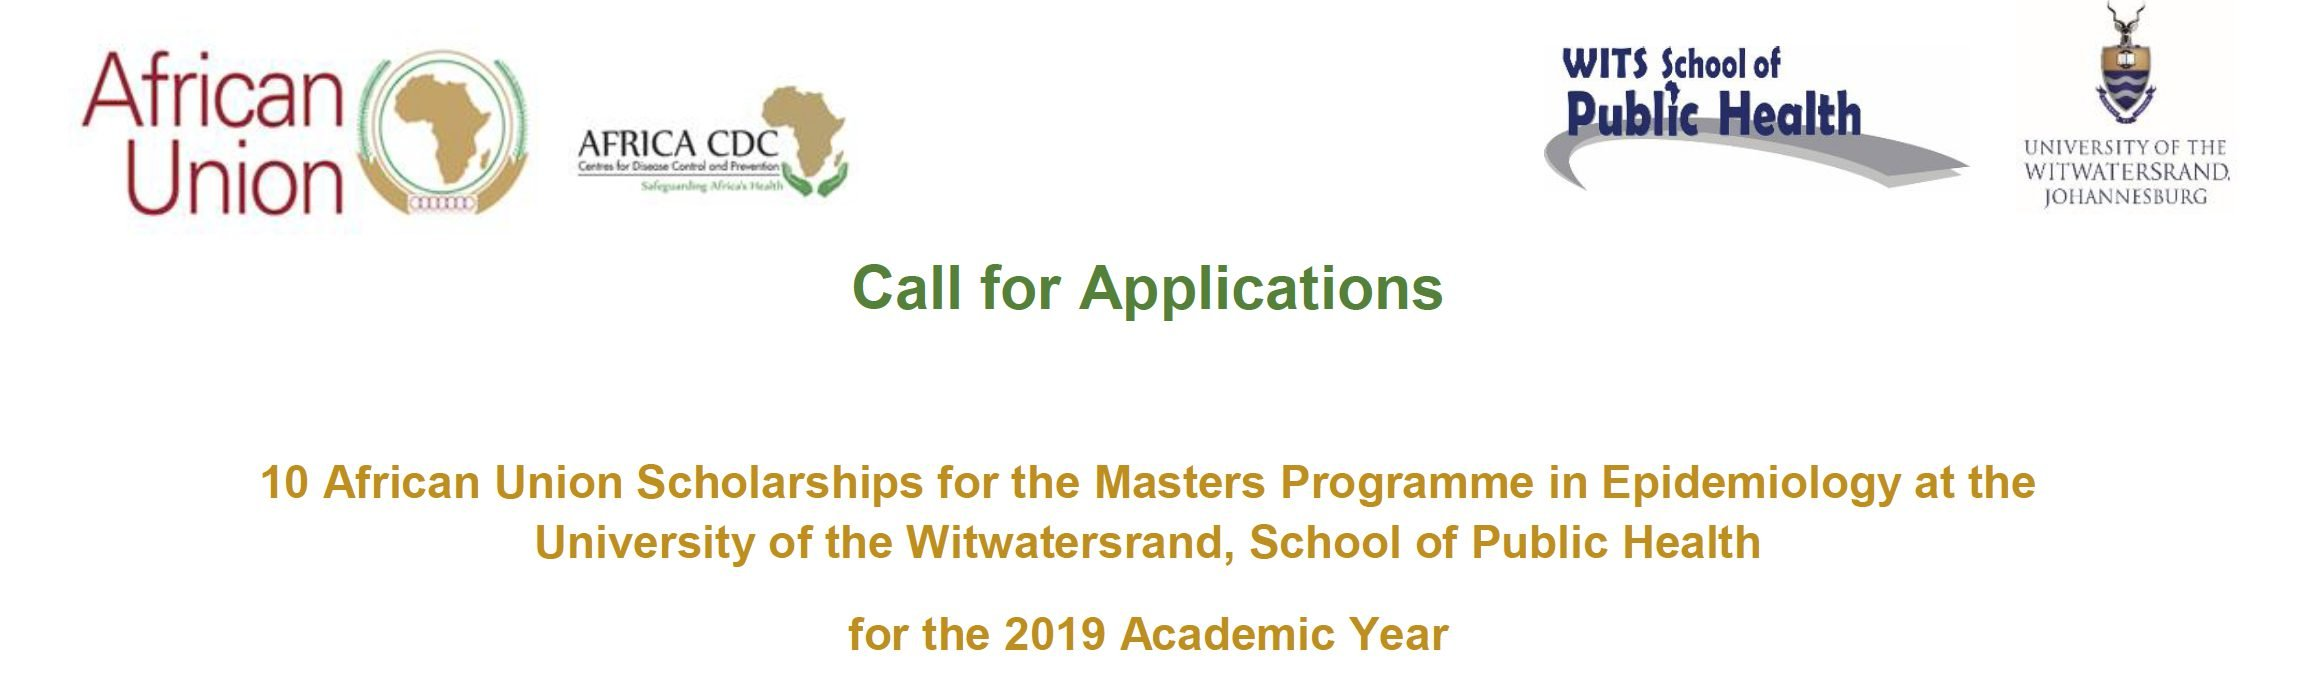 African Union MSc Scholarships